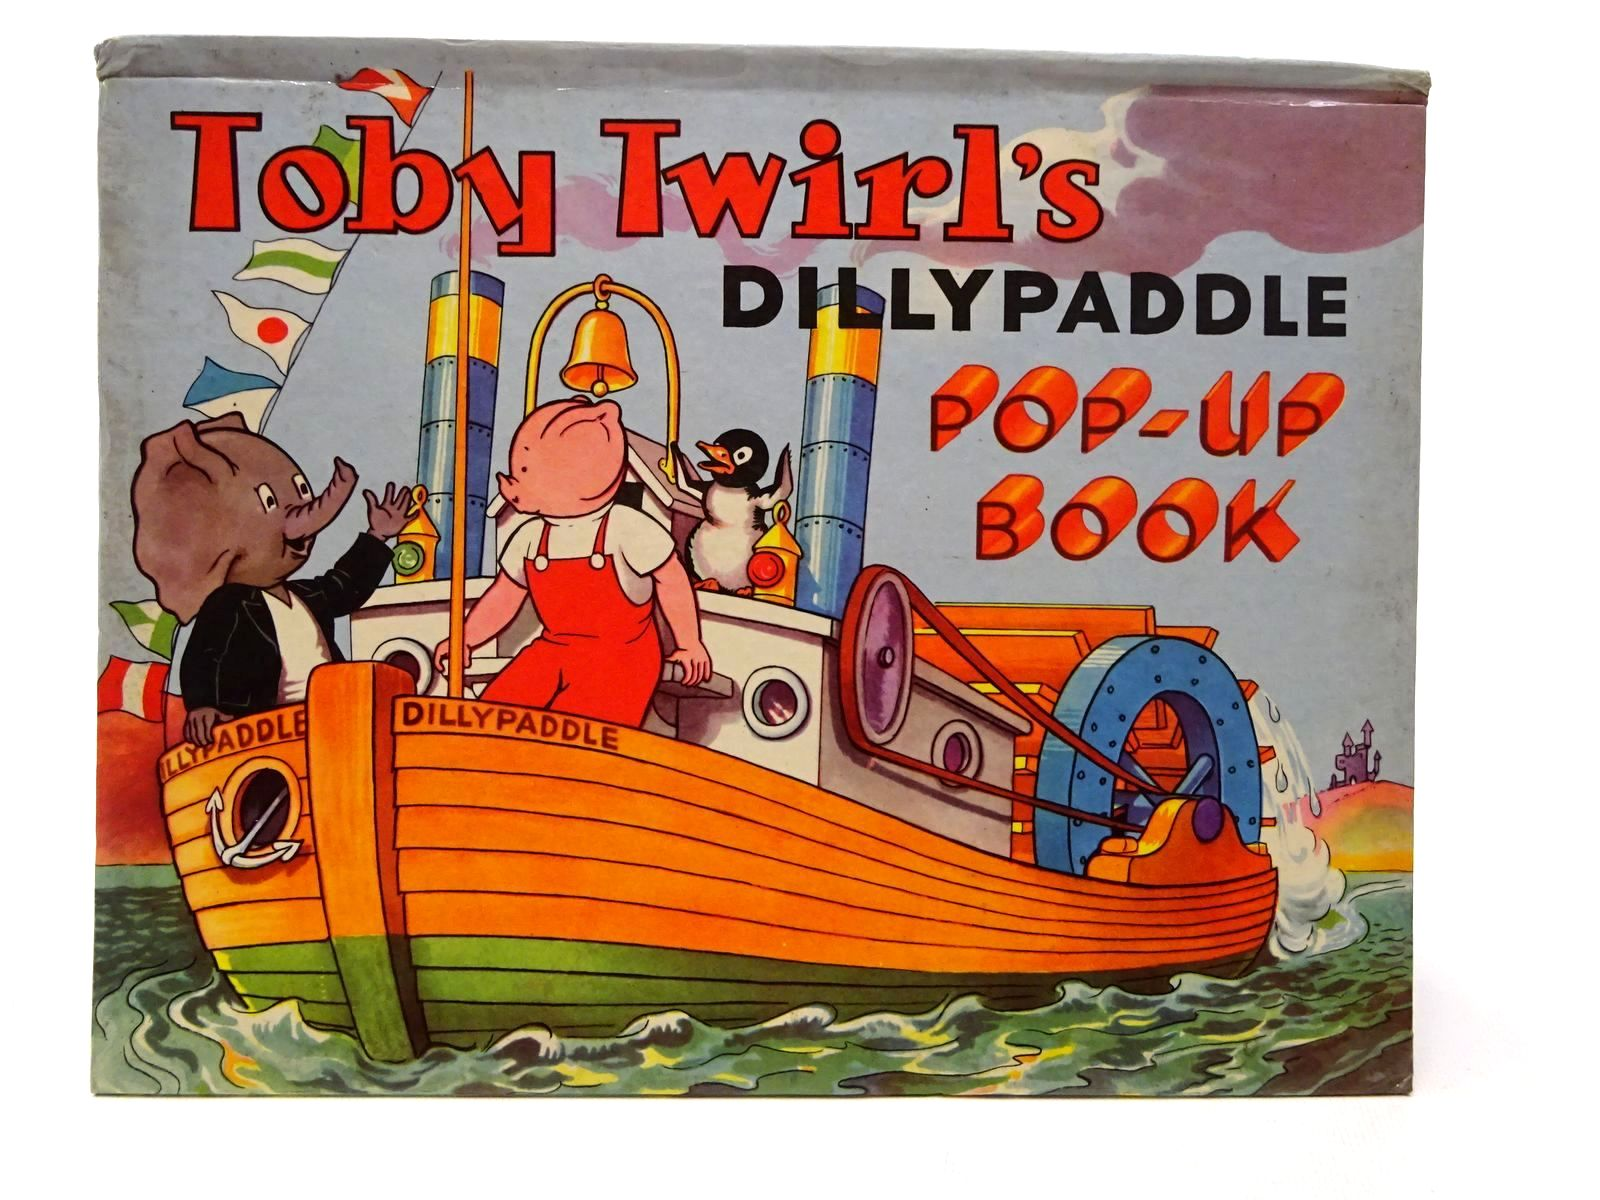 Photo of TOBY TWIRL'S DILLYPADDLE POP-UP BOOK